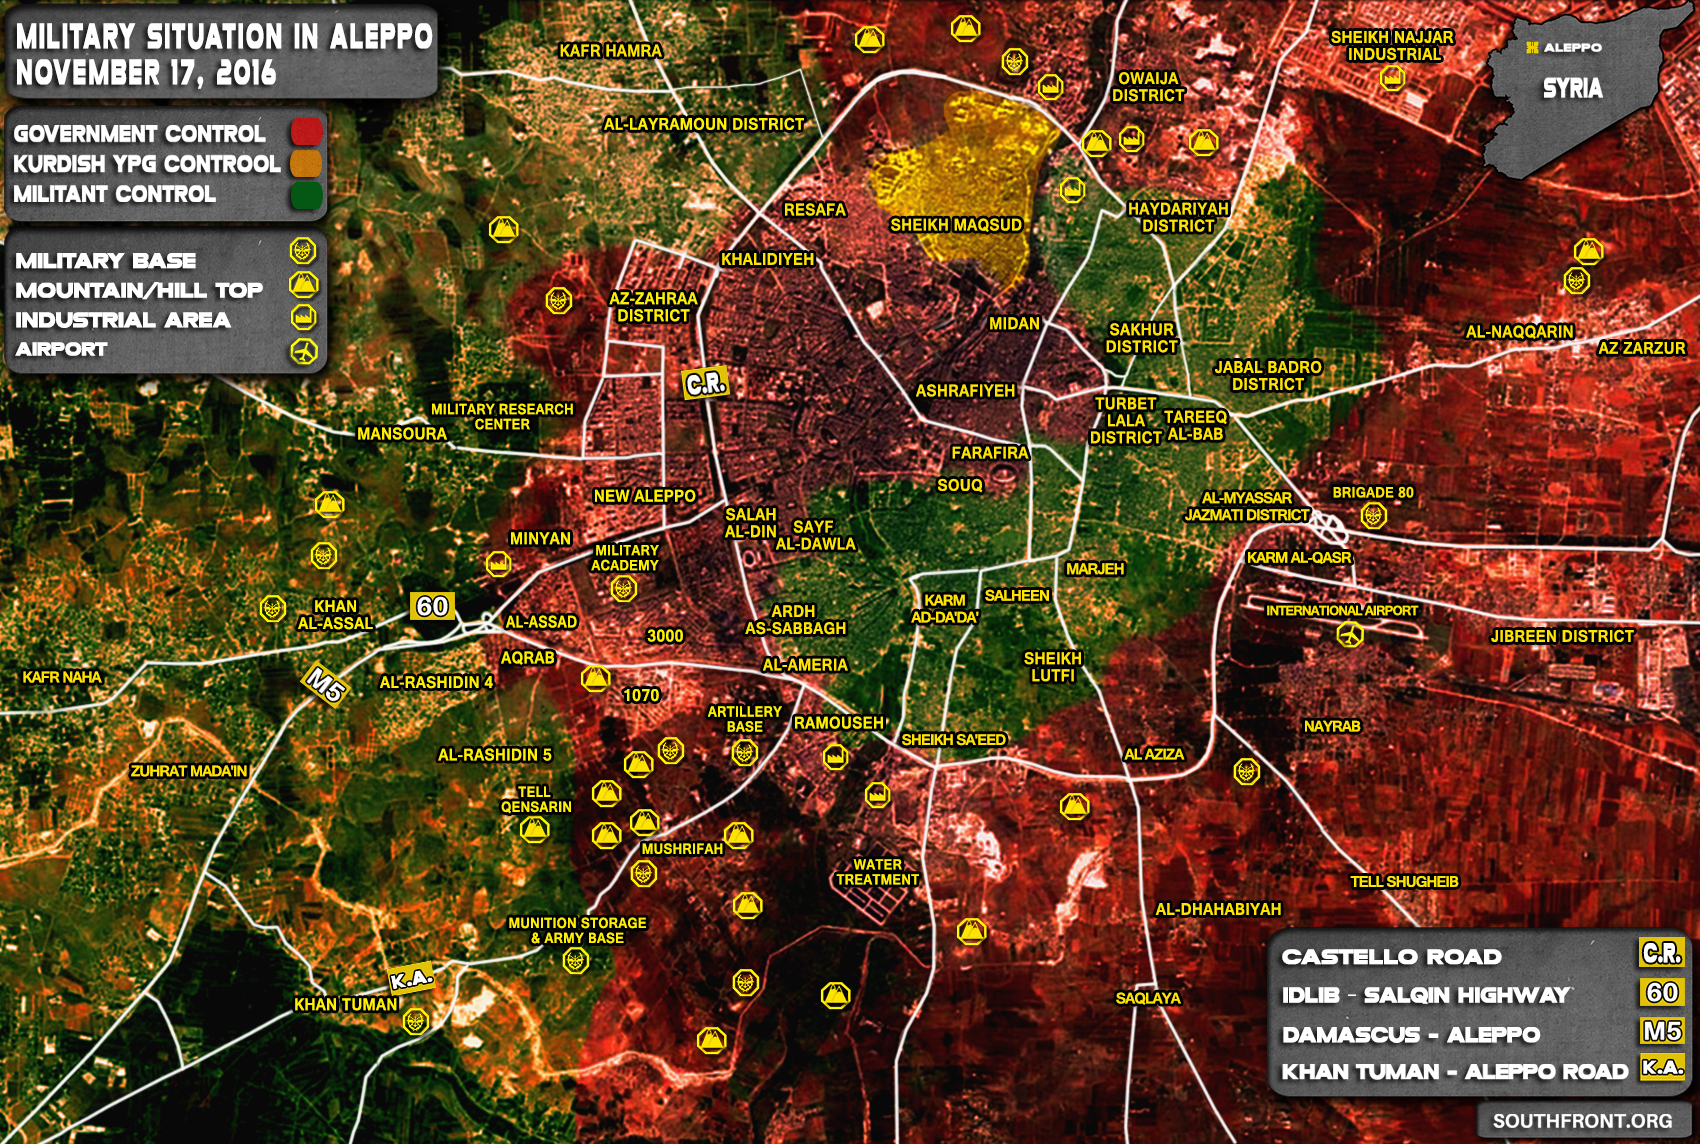 Syria War Map: General Look at Military Situation in Aleppo City on November 17, 2016